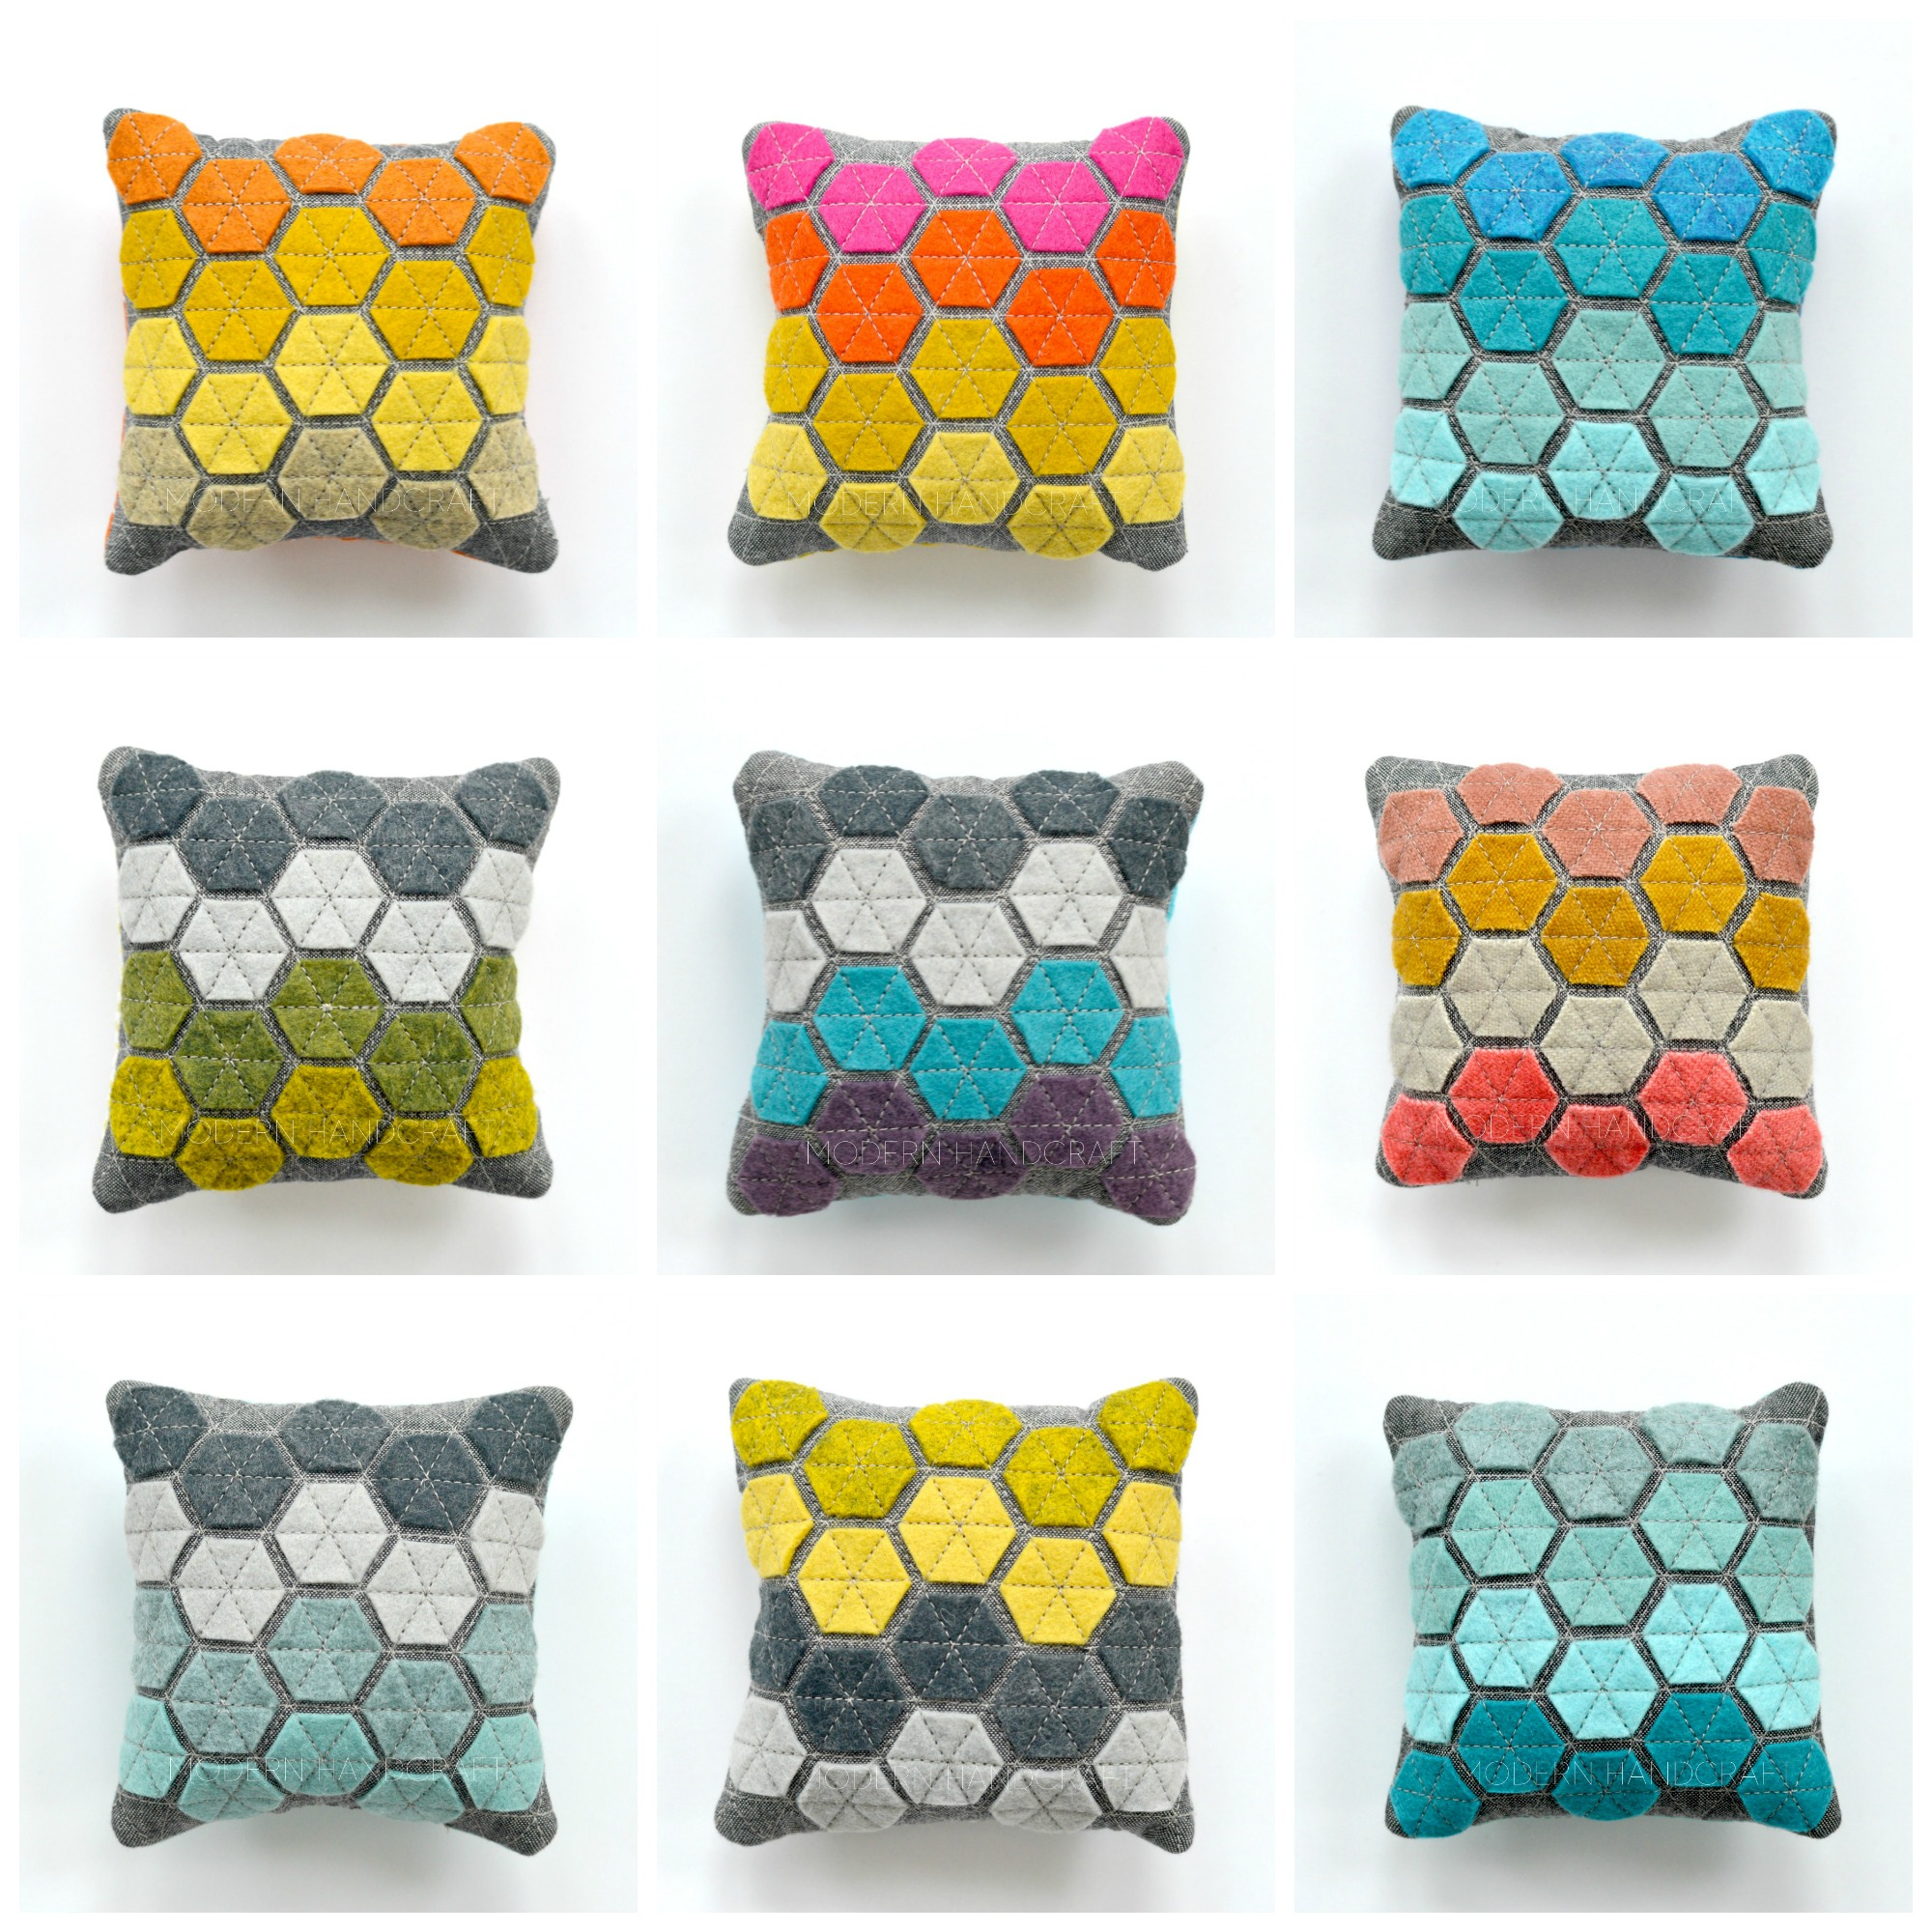 Modern Handcraft // Hexie Pincushions for sale